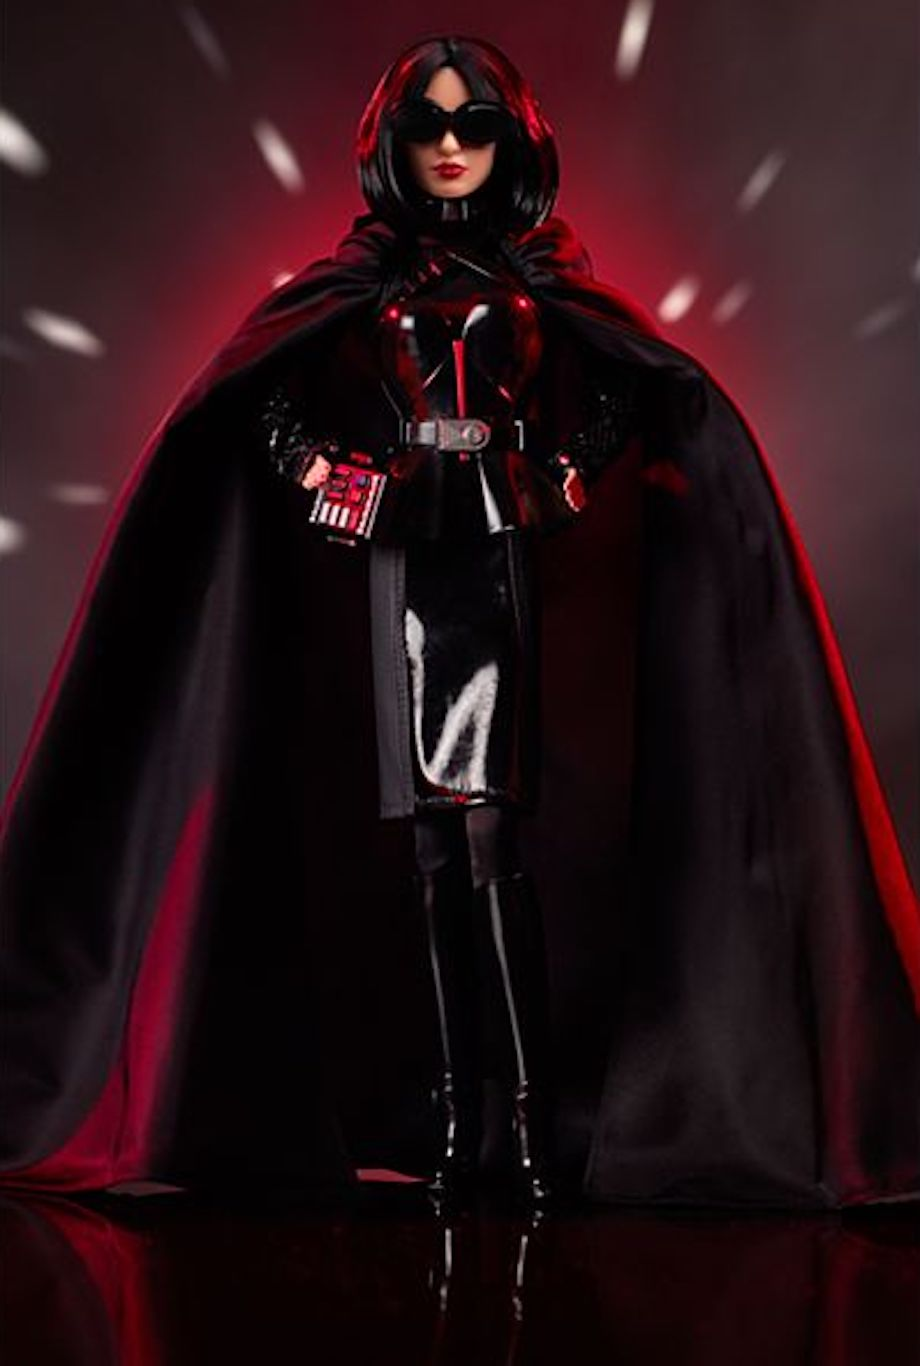 barbie-gets-a-line-of-star-wars-action-figures-that-shows-off-new-fashion-for-darth-vader-r2-d2-and-princess-leia1